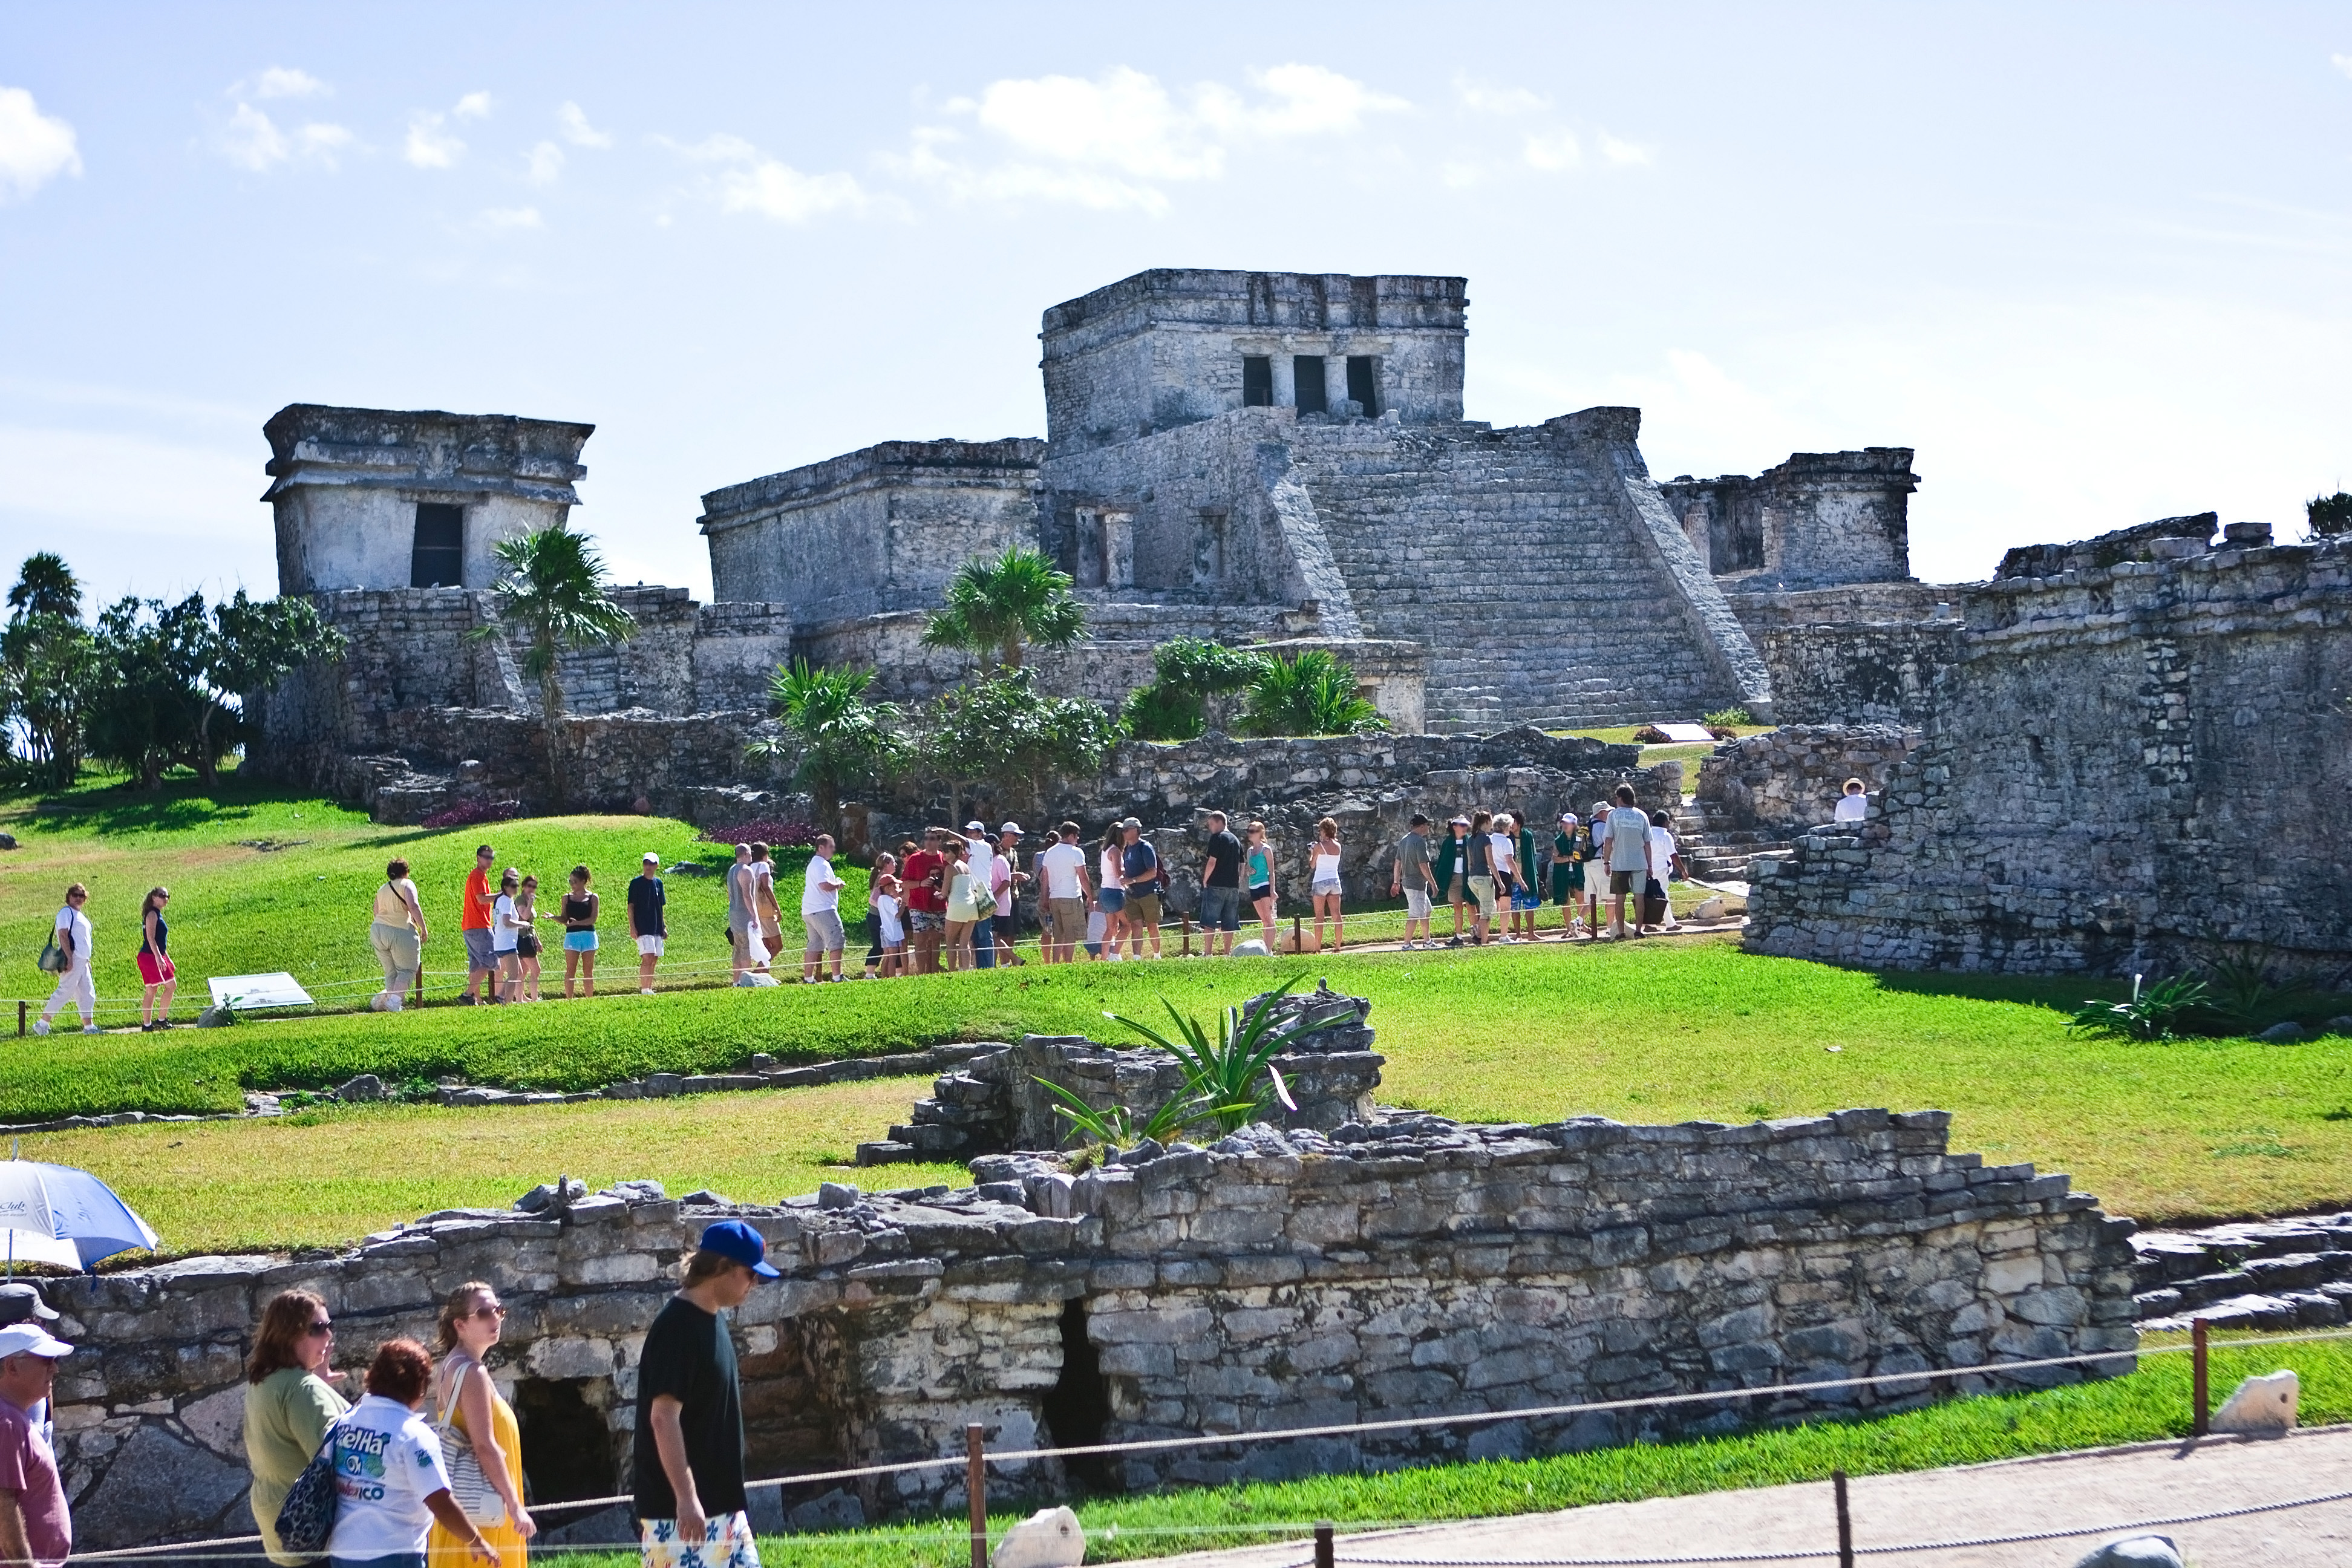 Tulum is the site of a Pre-Columbian Maya walled city serving as a major port for Cobá. The ruins are situated on 12-meter tall cliffs, along the east coast of the Yucatán Peninsula on the Caribbean Sea in the state of Quintana Roo, Mexico